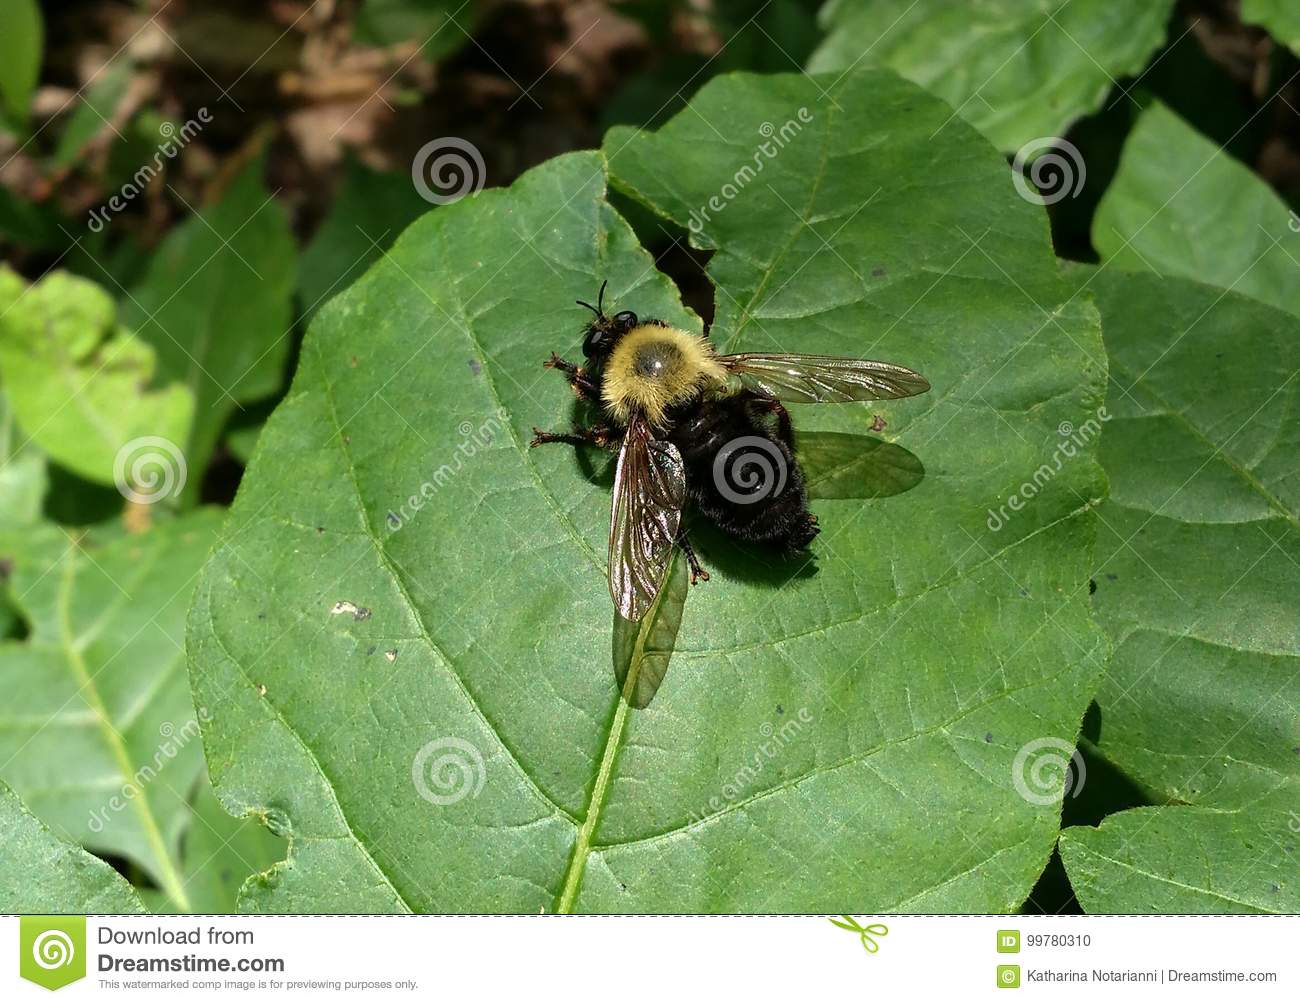 Black Bumble Bee >> Yellow And Black Bumble Bee On Leaf Stock Photo Image Of